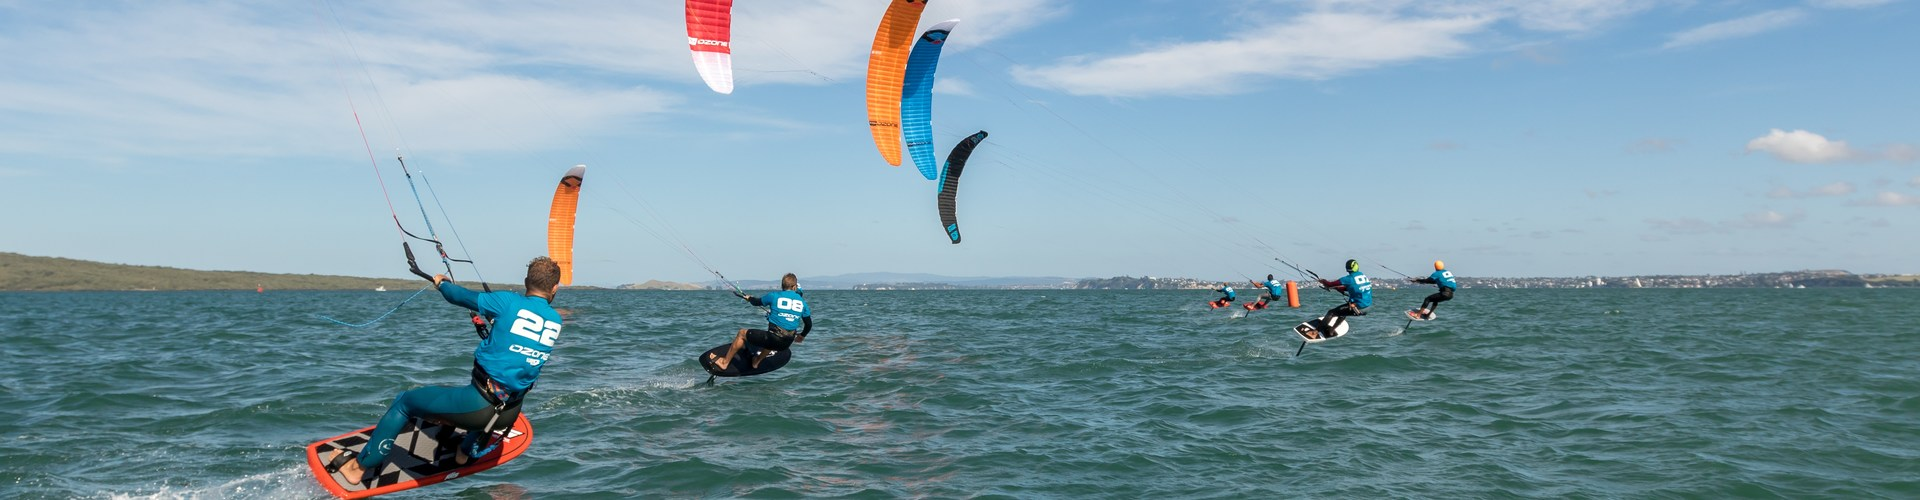 Nz kitefoiling nationals 2017 takapuna %28171 of 182%29 cropped